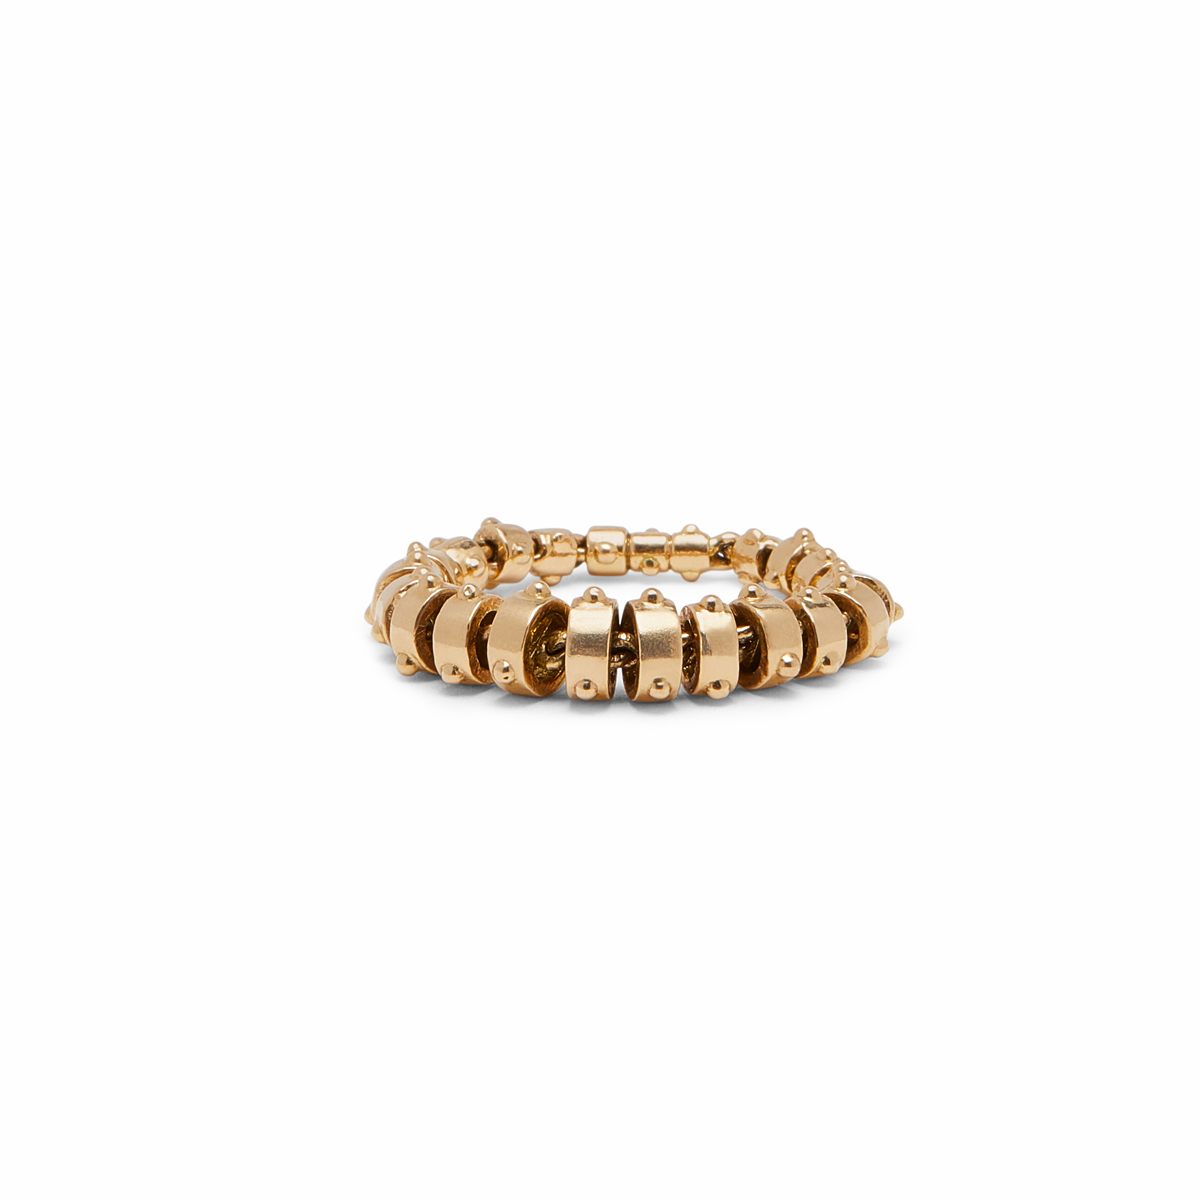 VGIJshop-02190416-wave-ring-view